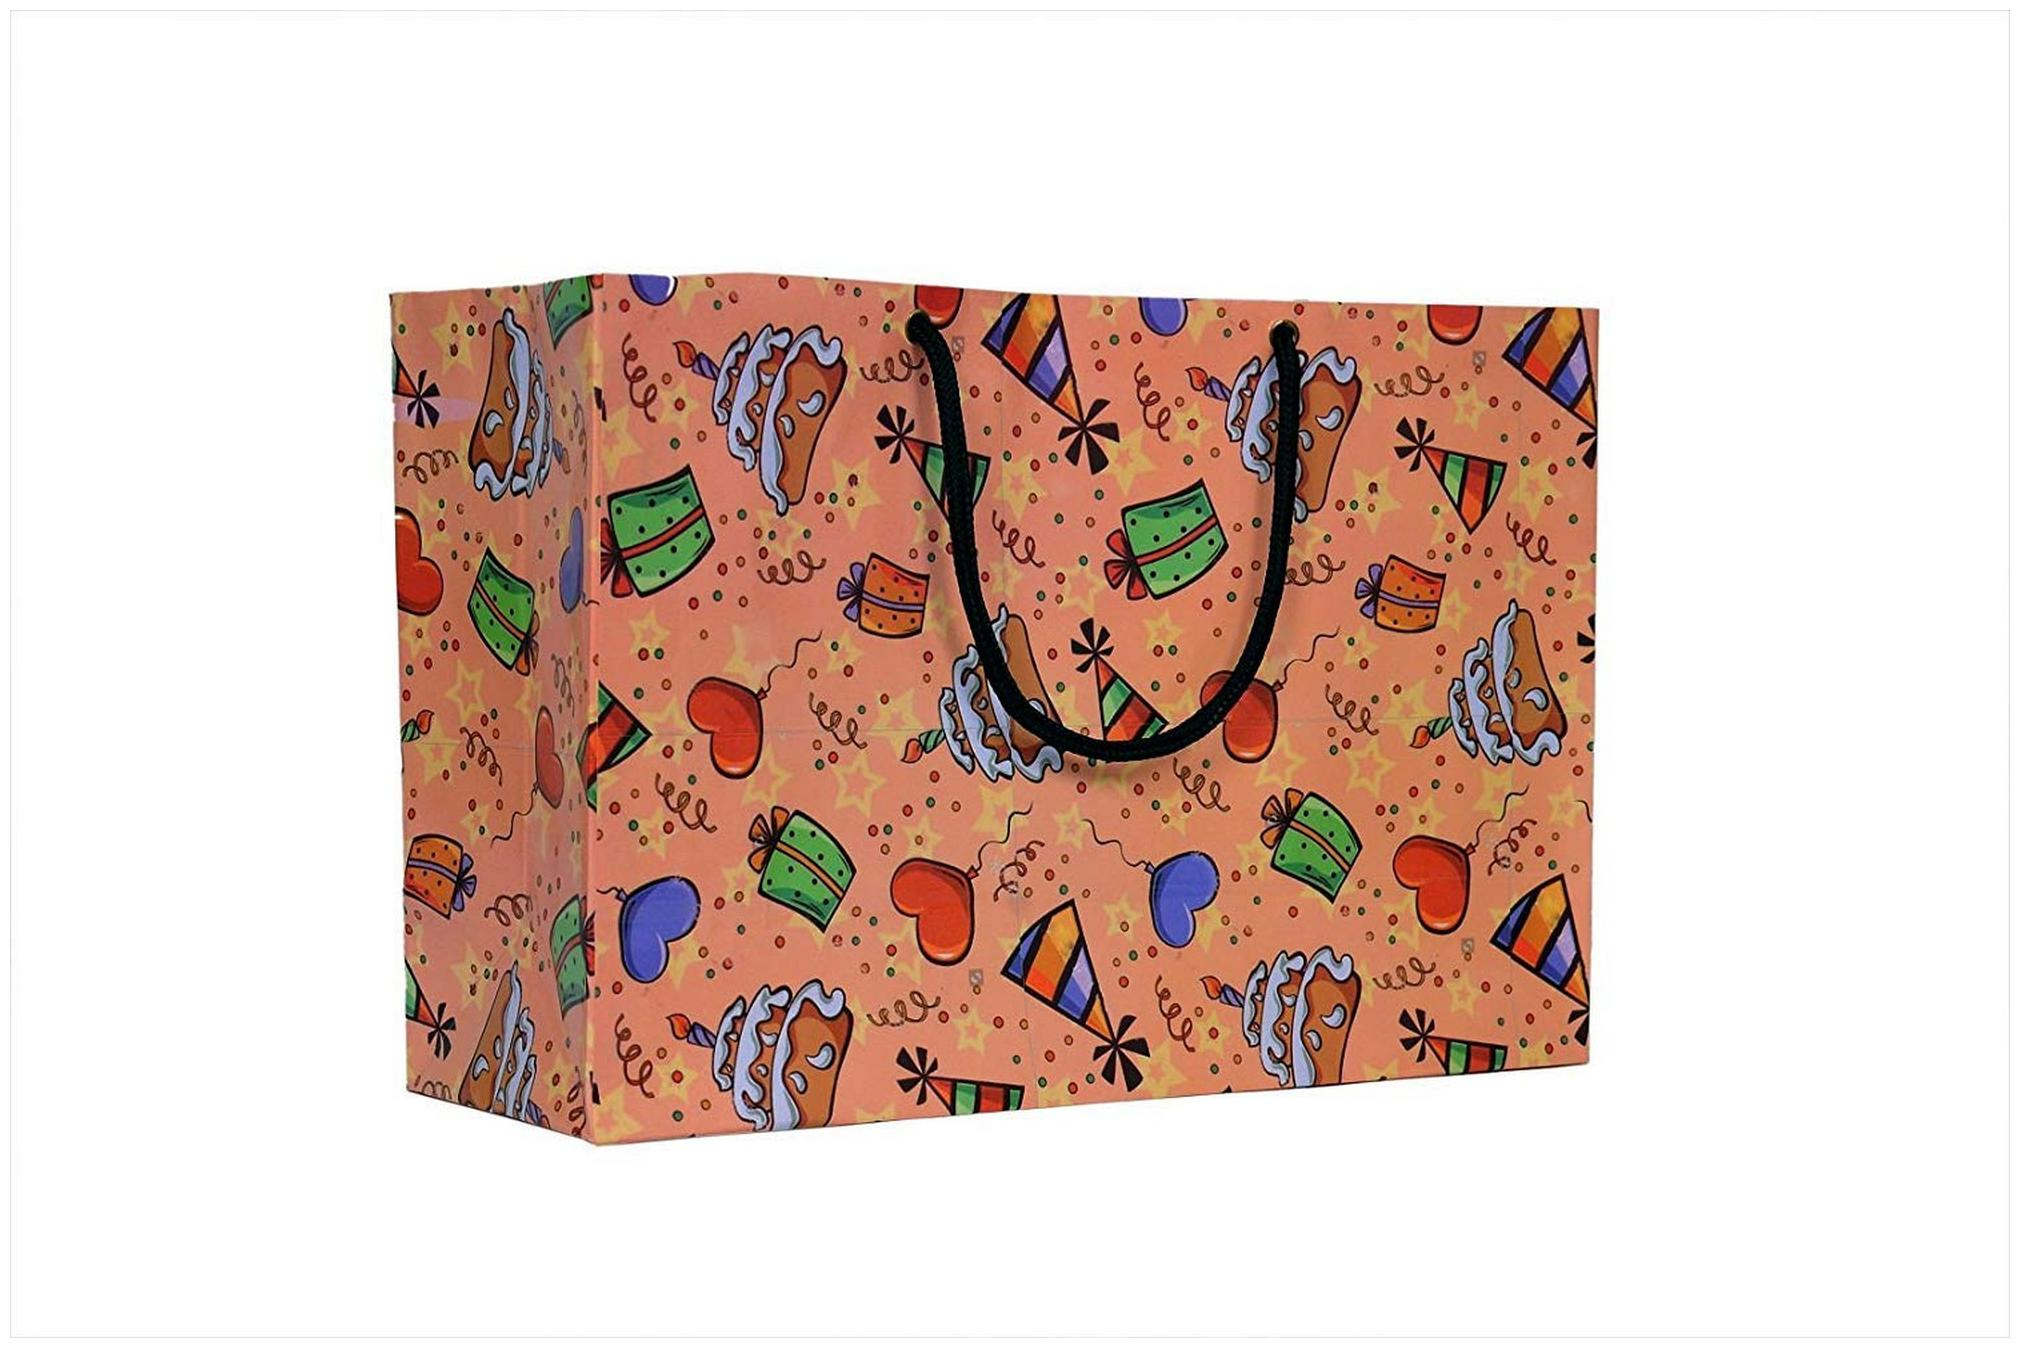 https://assetscdn1.paytm.com/images/catalog/product/S/ST/STAA-A-BAGS-LATA-A-94807863E599CE/1563561965987_0..jpg